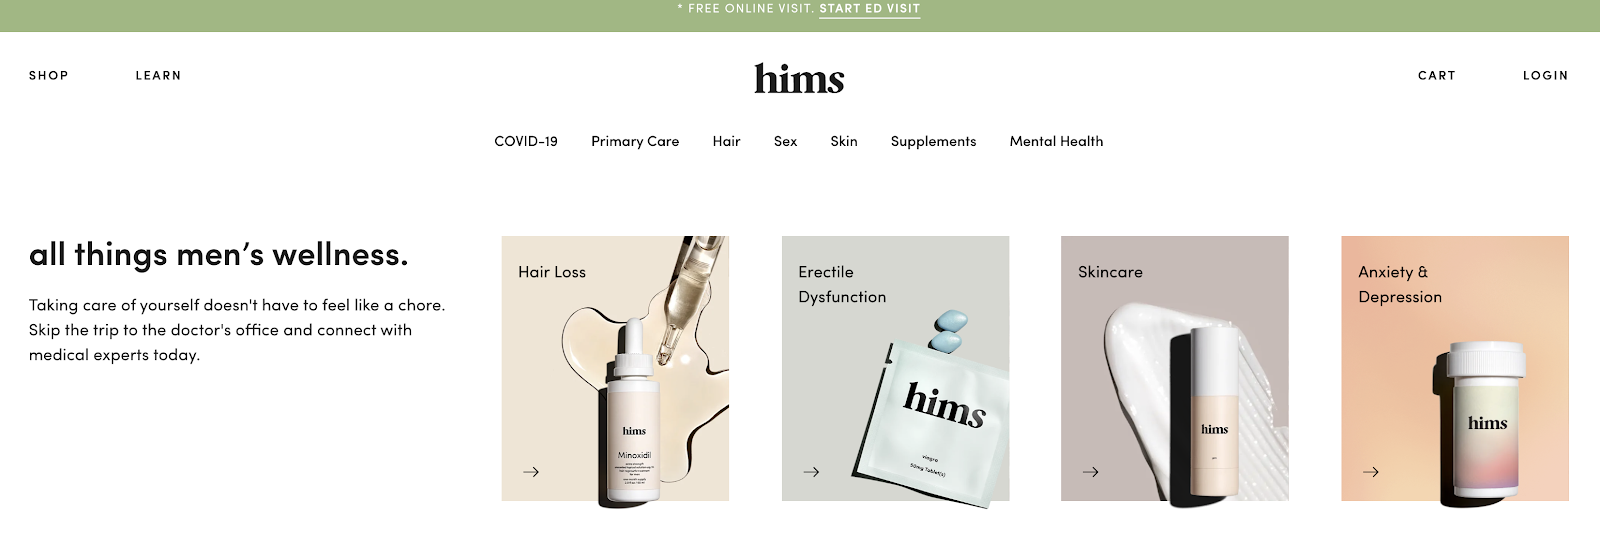 Hims eCommerce Website Example (Screenshot)